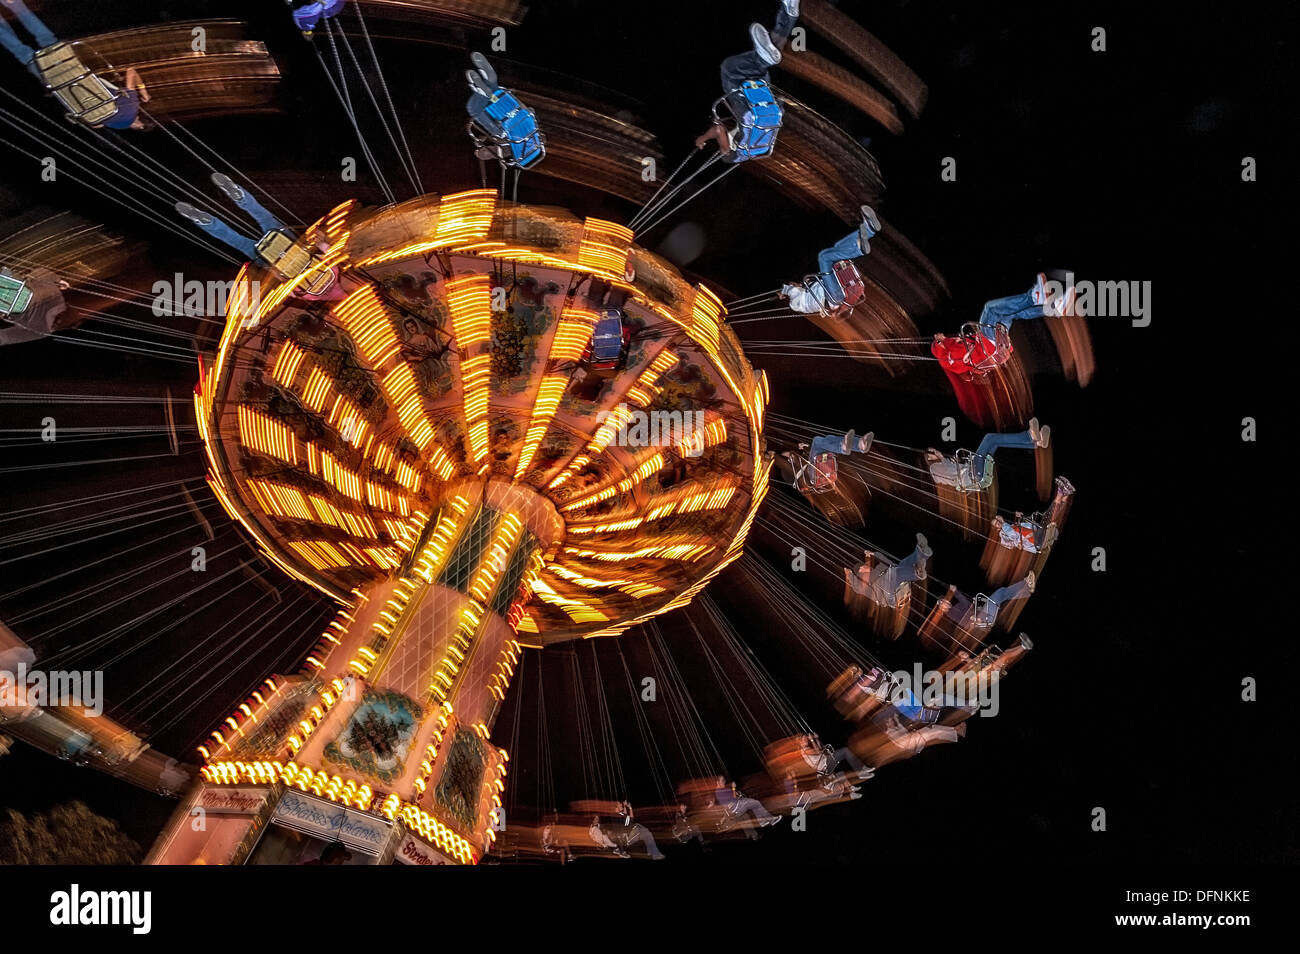 kids go for a whirl .A night motion image of an amusement park ride in operation. - Stock Image